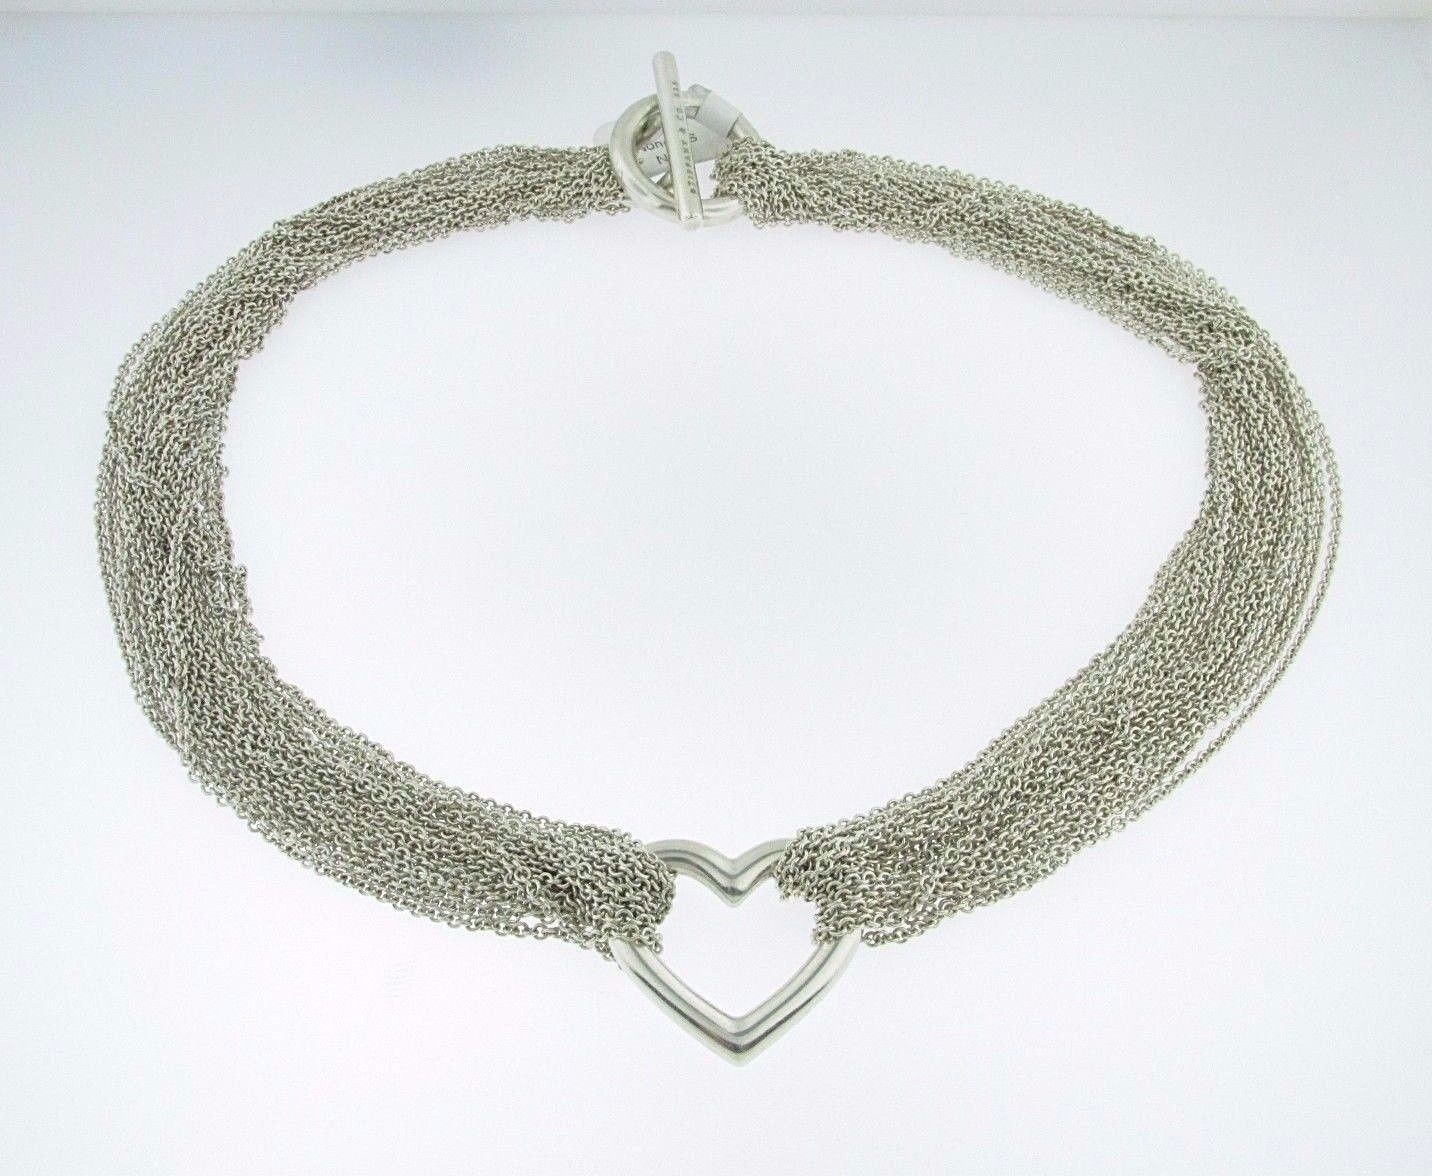 0ee33d97d4807 Tiffany & Co. Heart Multi Chain Mesh Toggle Necklace in .925 ...